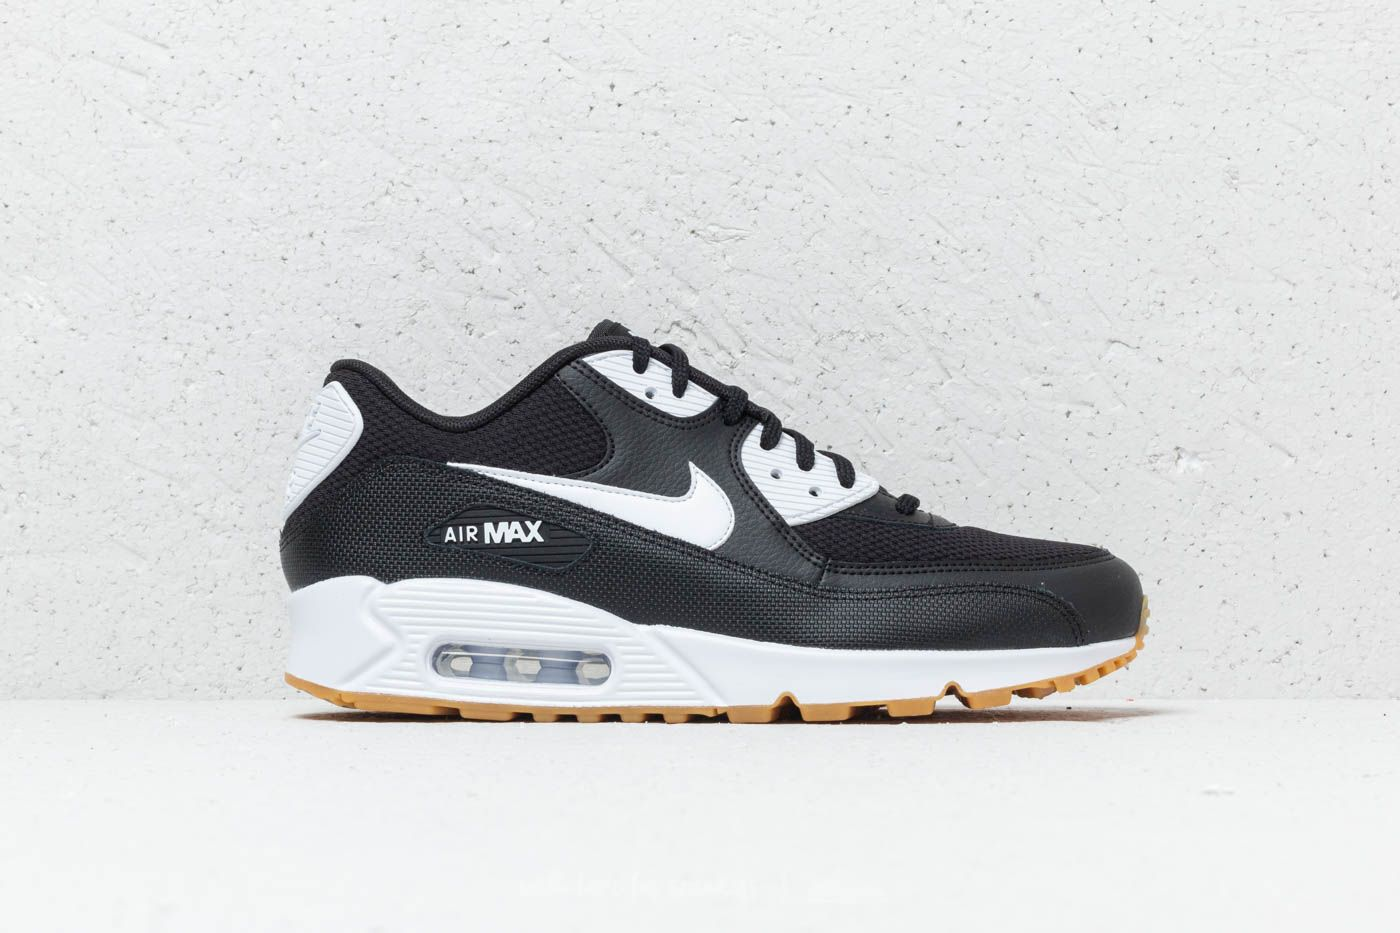 brand new 9d097 e8041 Nike Wmns Air Max 90 Black White-Gum Light Brown at a great price